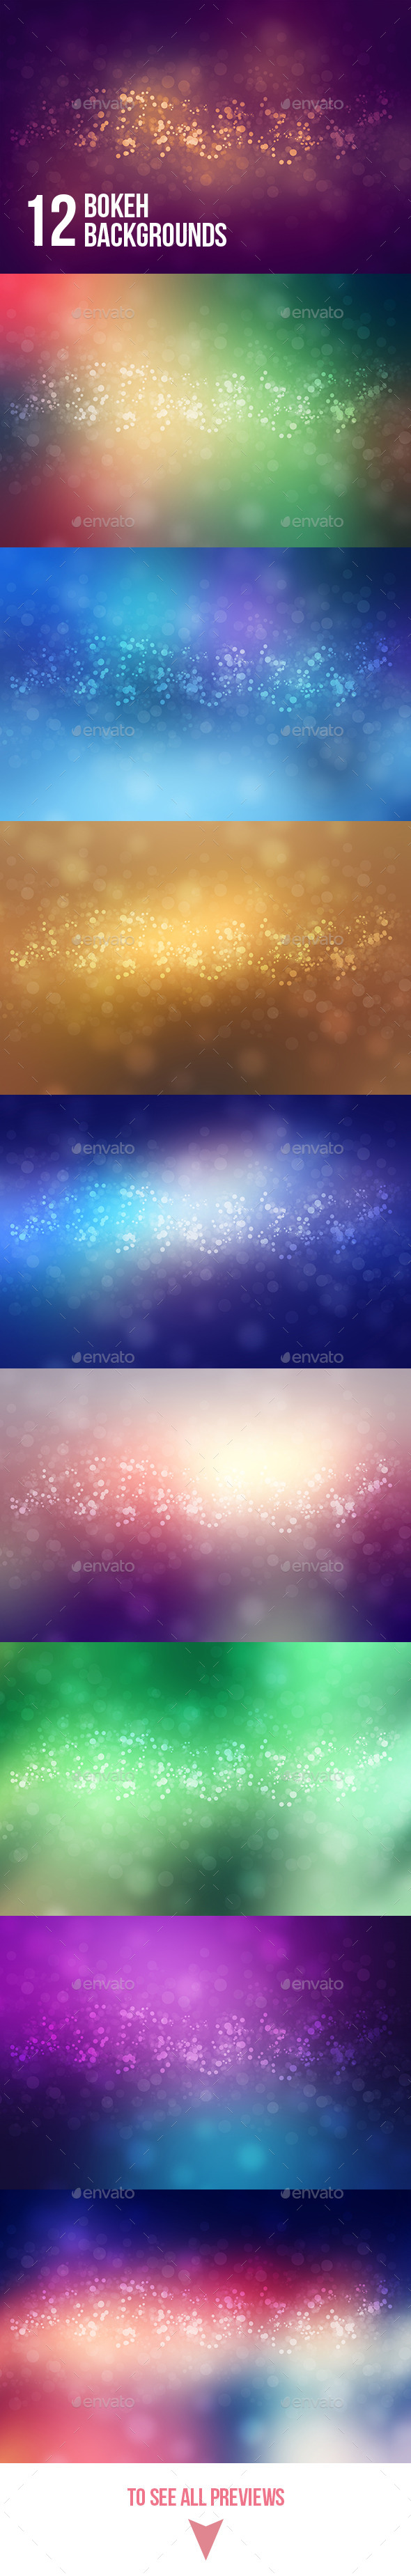 Abstract Bokeh Backgrounds - Abstract Backgrounds